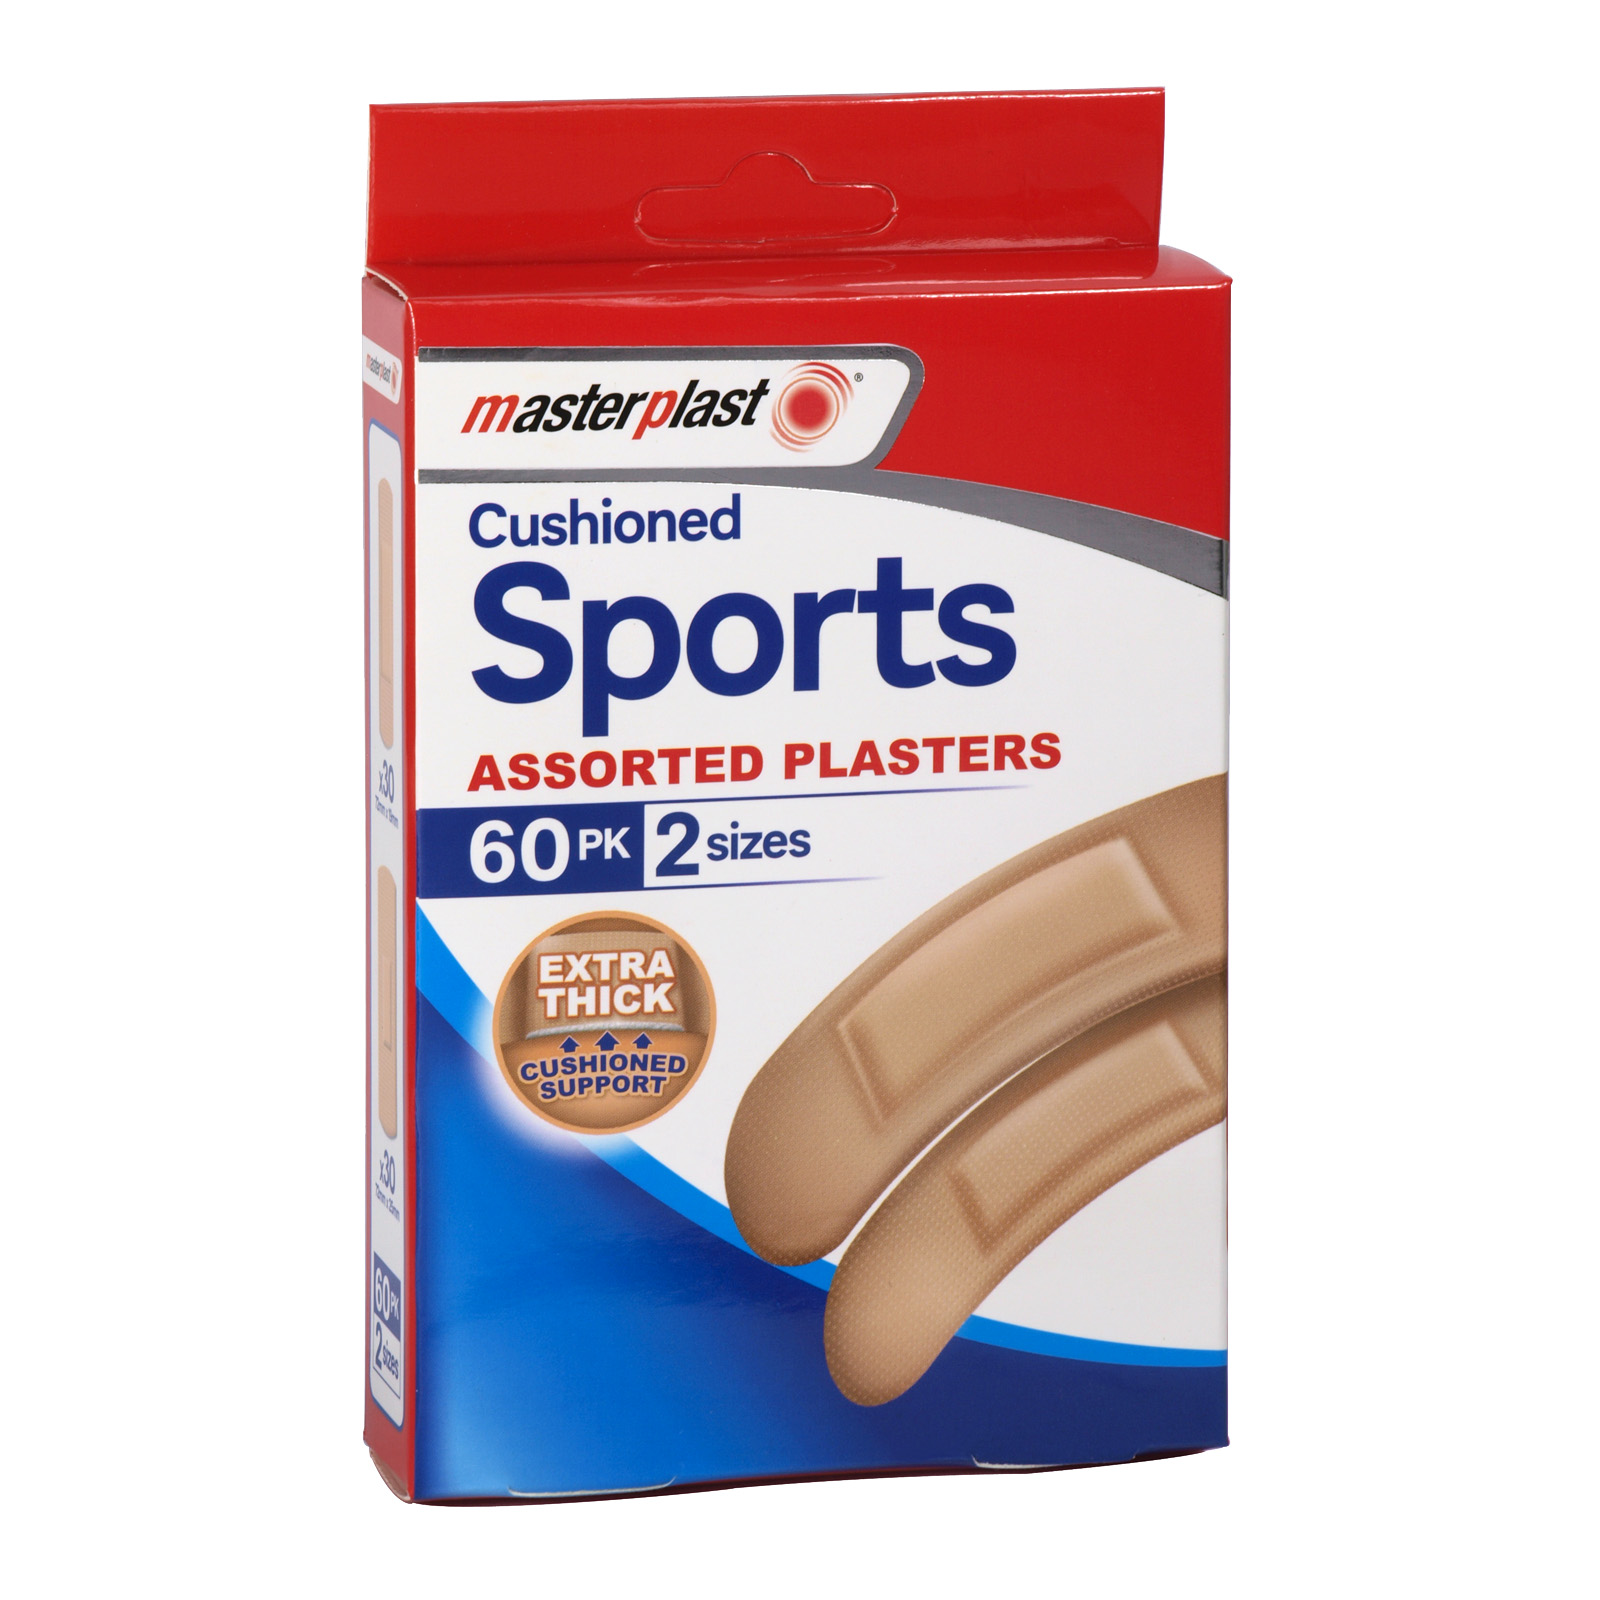 MASTERPLAST 60 CUSHIONED SPORTS PLASTERS X12